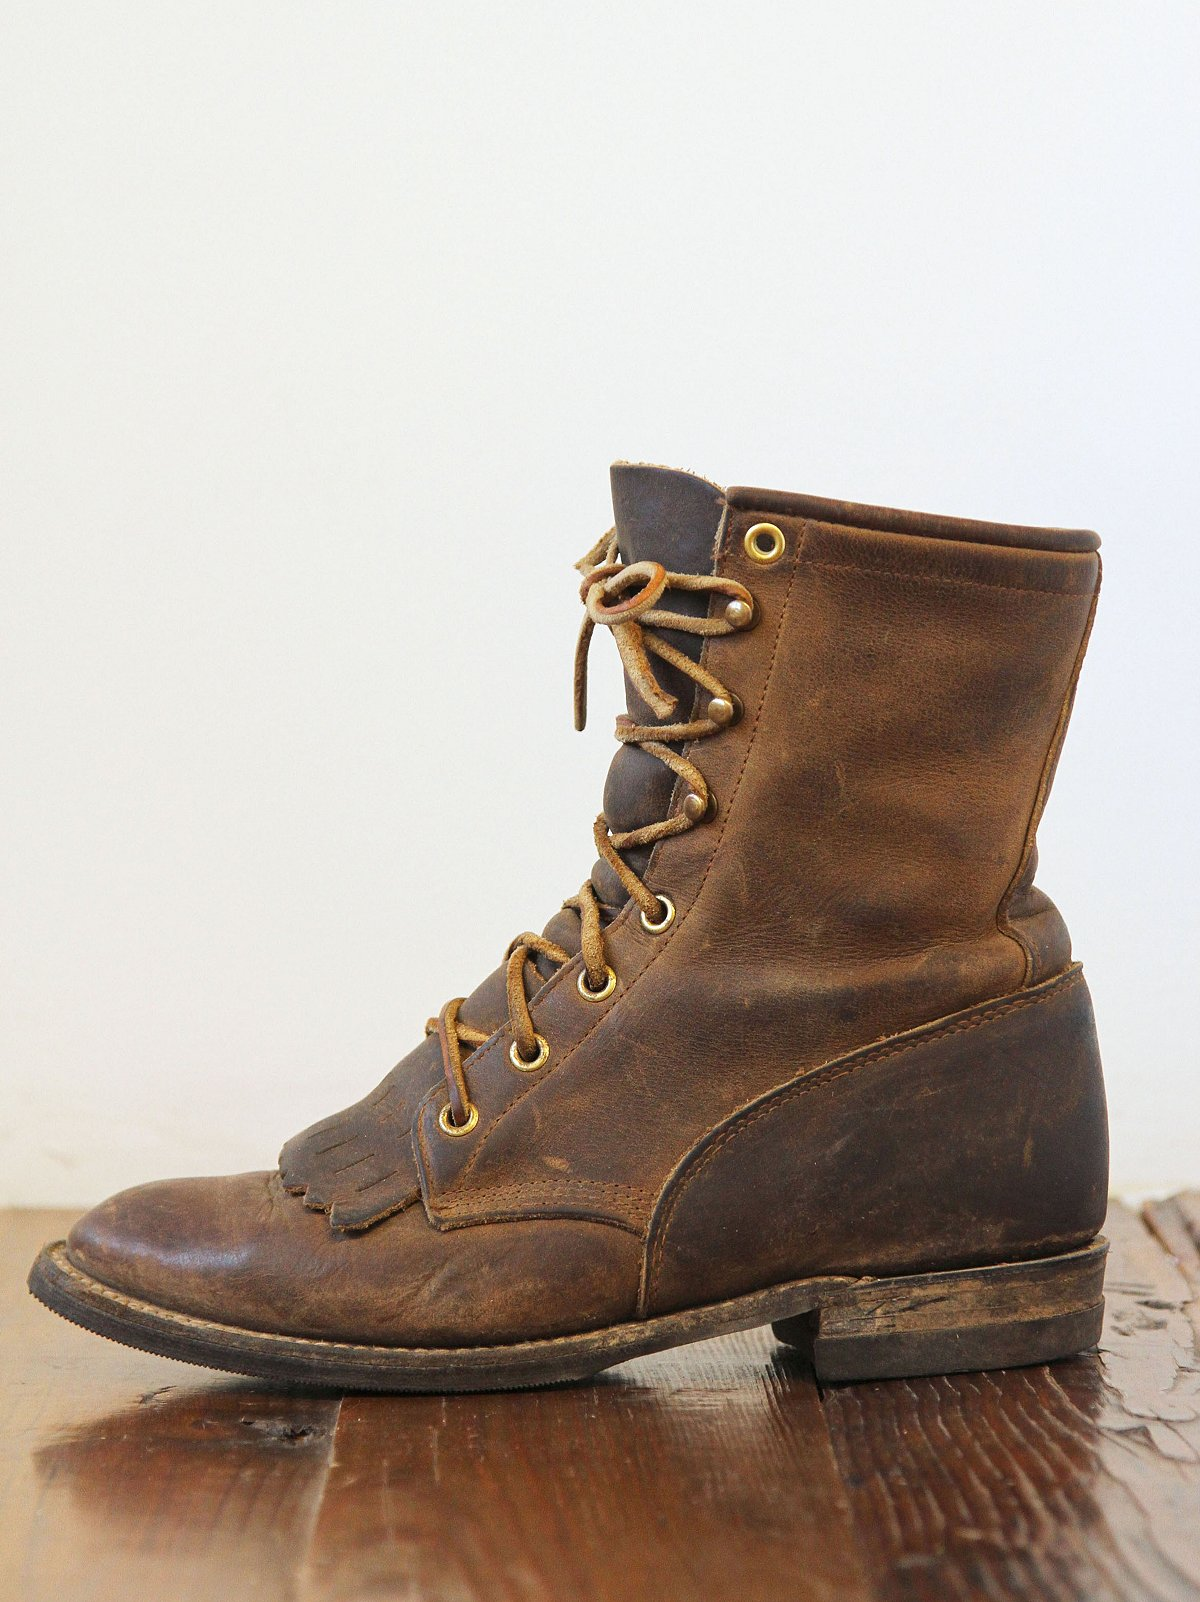 Vintage Brown Leather Lace-Up Boots